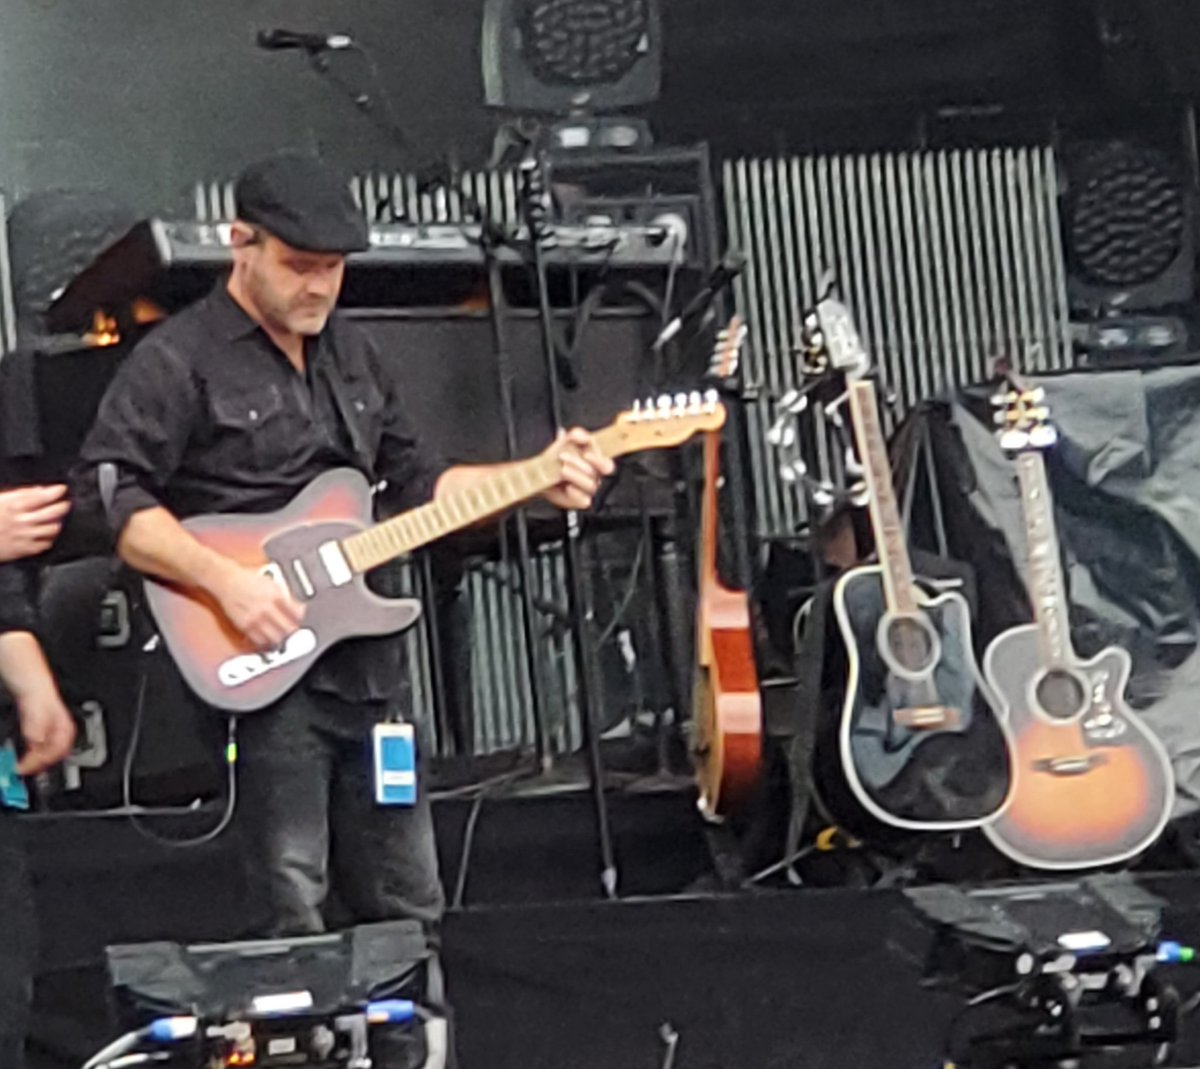 I spy @beautackett ....and @blakeshelton 's guitars  #gillettestadium<br>http://pic.twitter.com/SYTncfWDQN